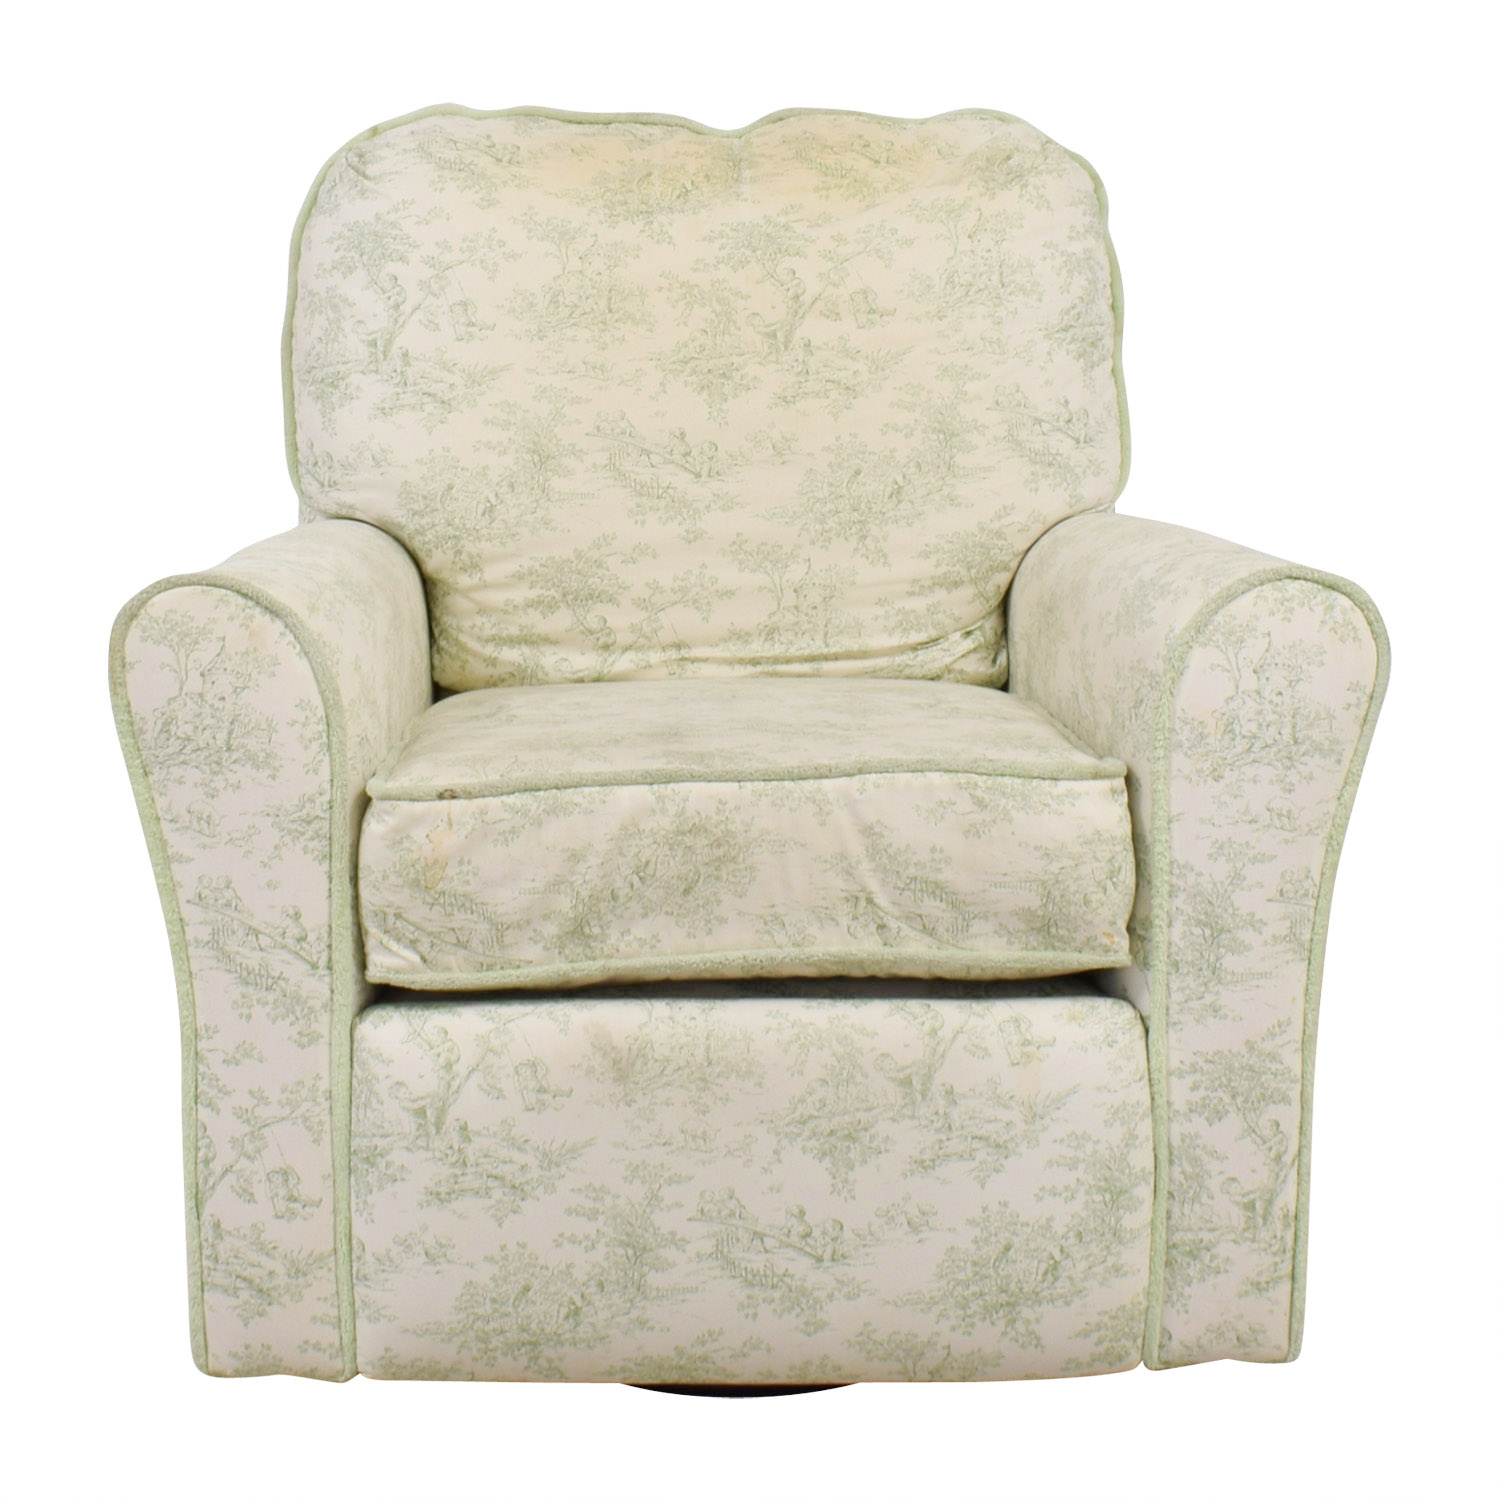 Beau 90% OFF   Bellini Baby Bellini Baby Childrenu0027s Playground White And Green  Rocking Chair Recliner / Chairs